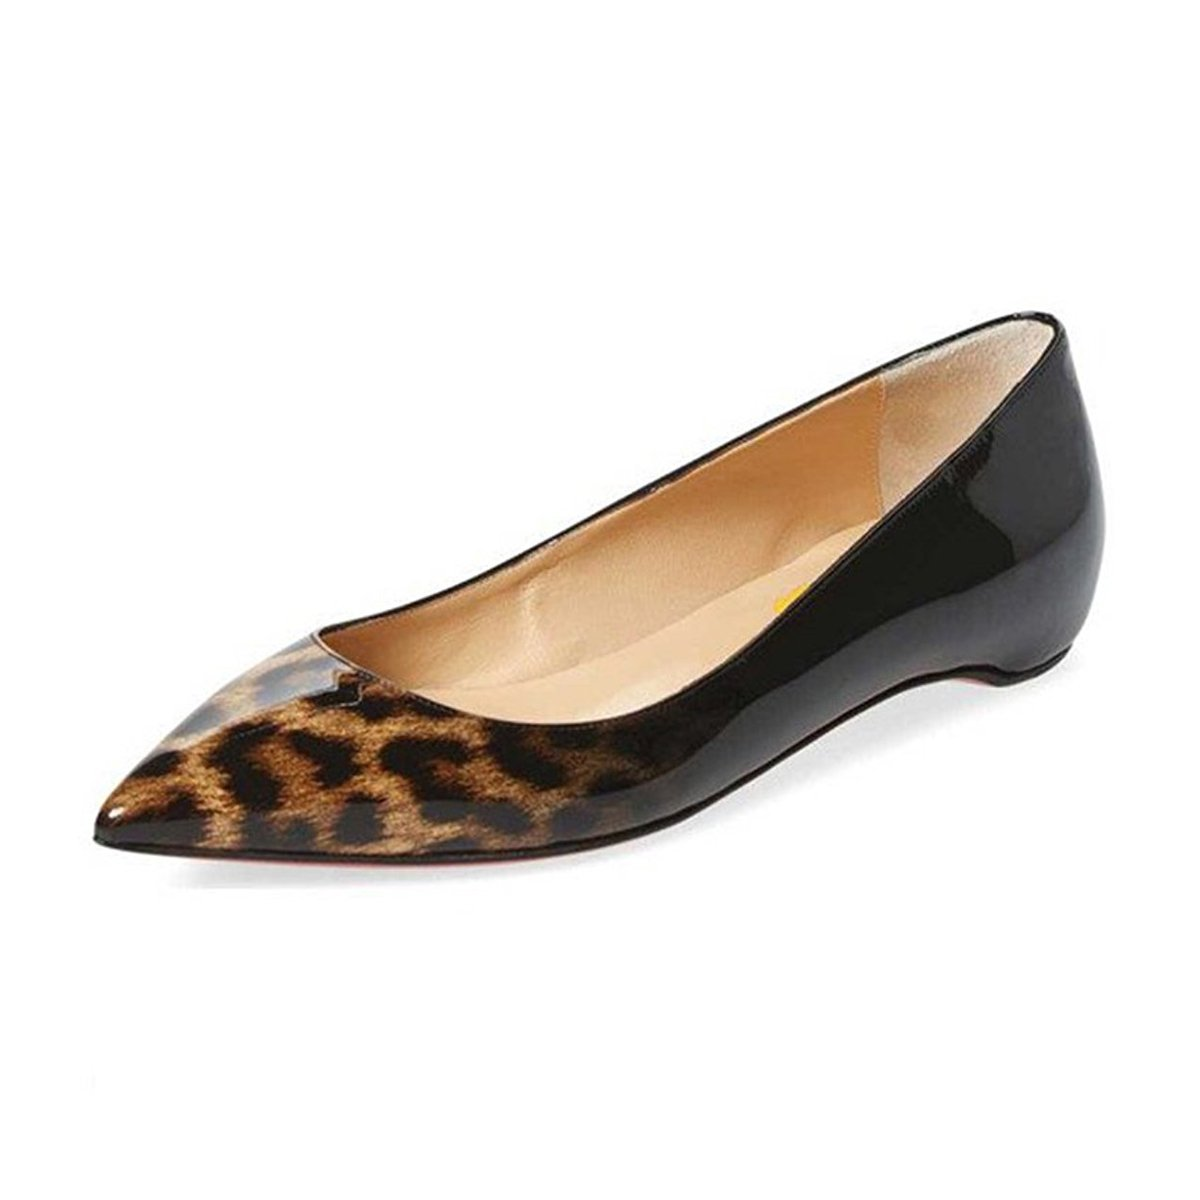 FSJ Women Sexy Leopard Prints Flats Hidden Low Heels Pumps Closed Pointy Toe Slip On Shoes Size 4-15 US B06XX8L2D6 12 M US|Leopard-gradient